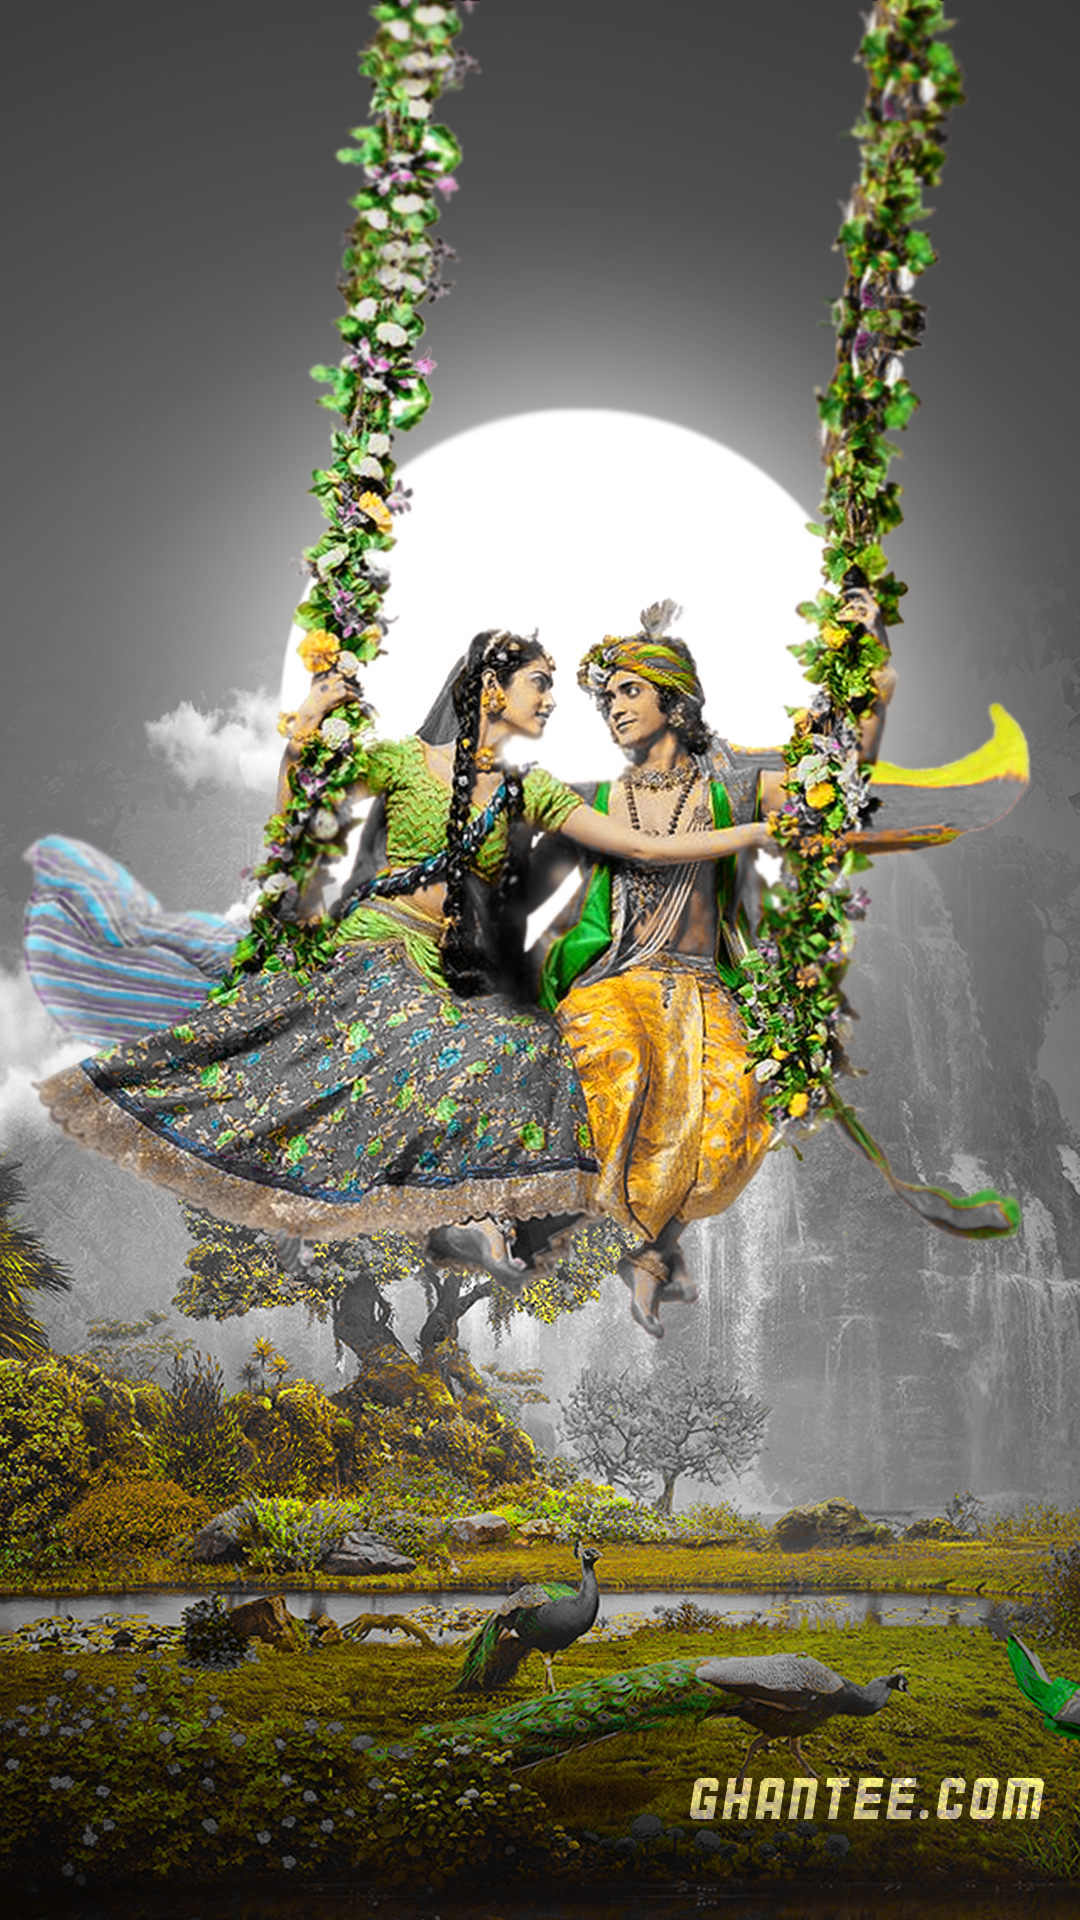 radhakrishna star bharat phone wallpaper | full HD